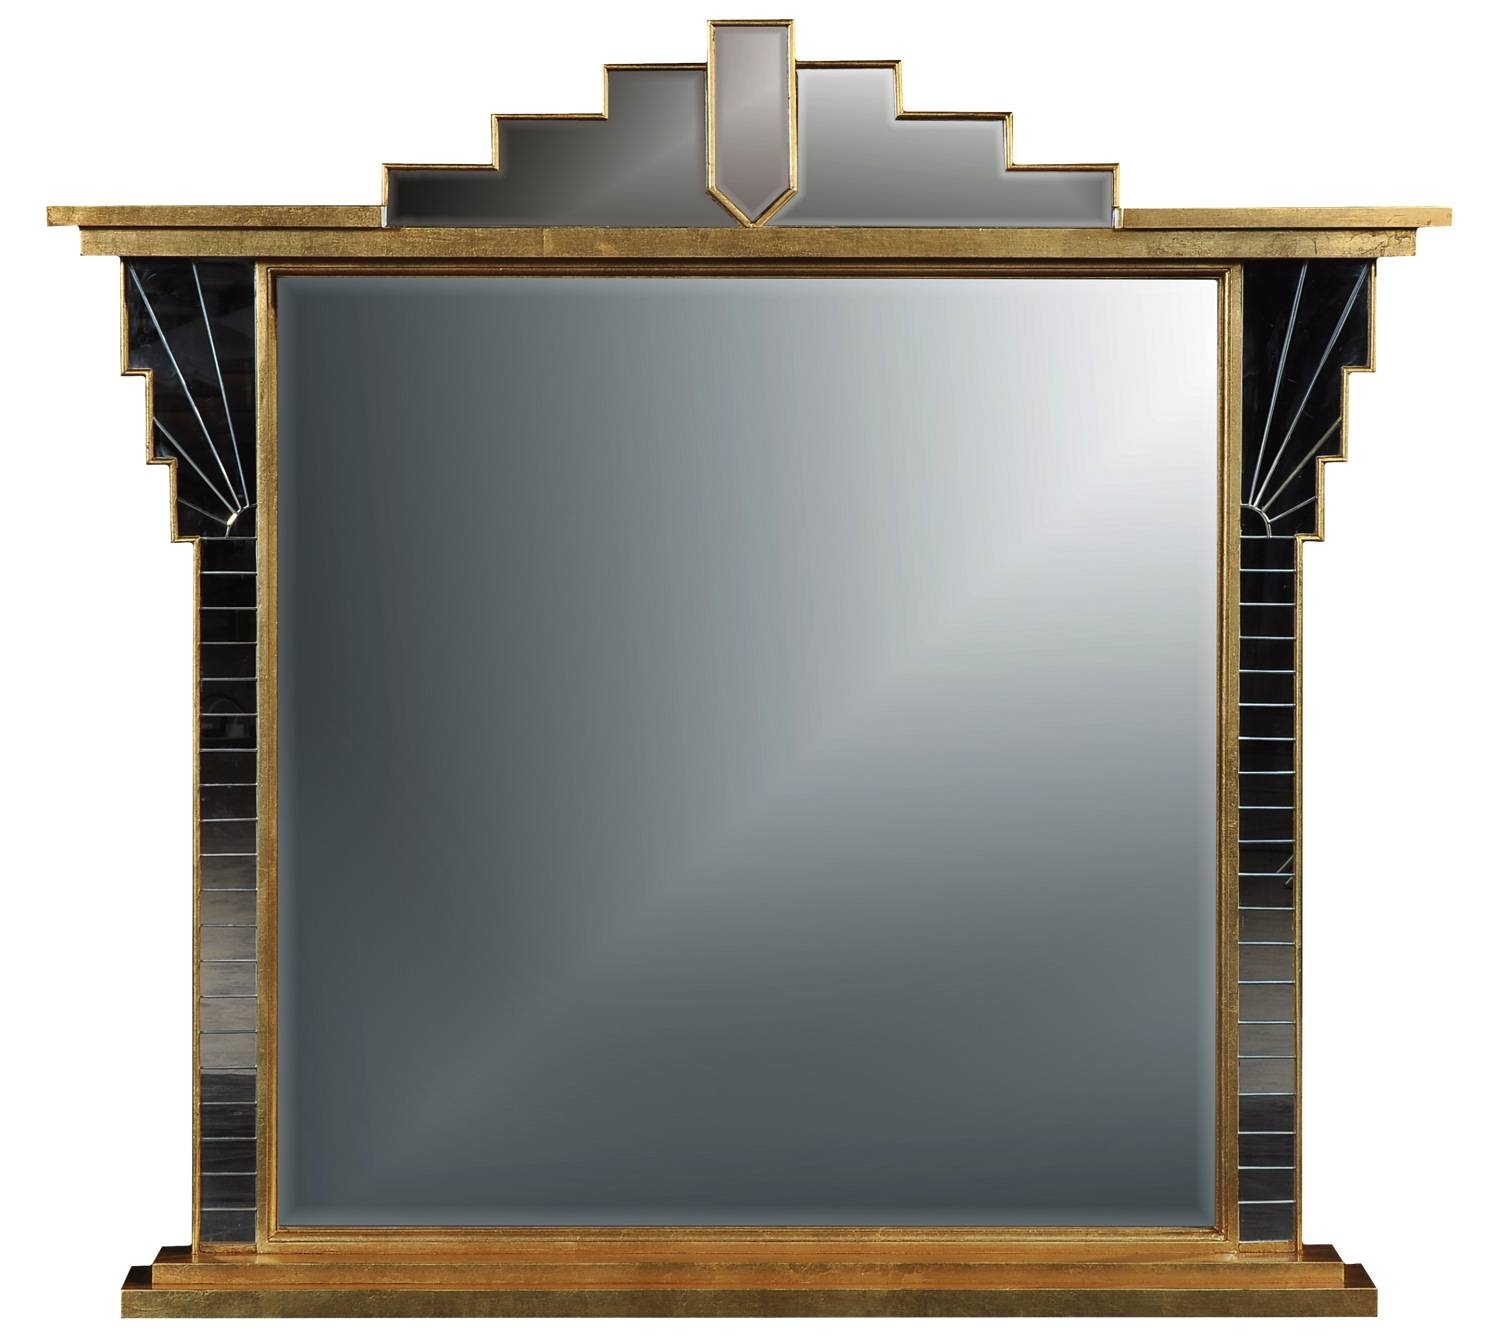 Art Deco Style Overmantel Mirror - Antique Finish, Overmantle inside Antique Art Deco Mirrors (Image 17 of 25)